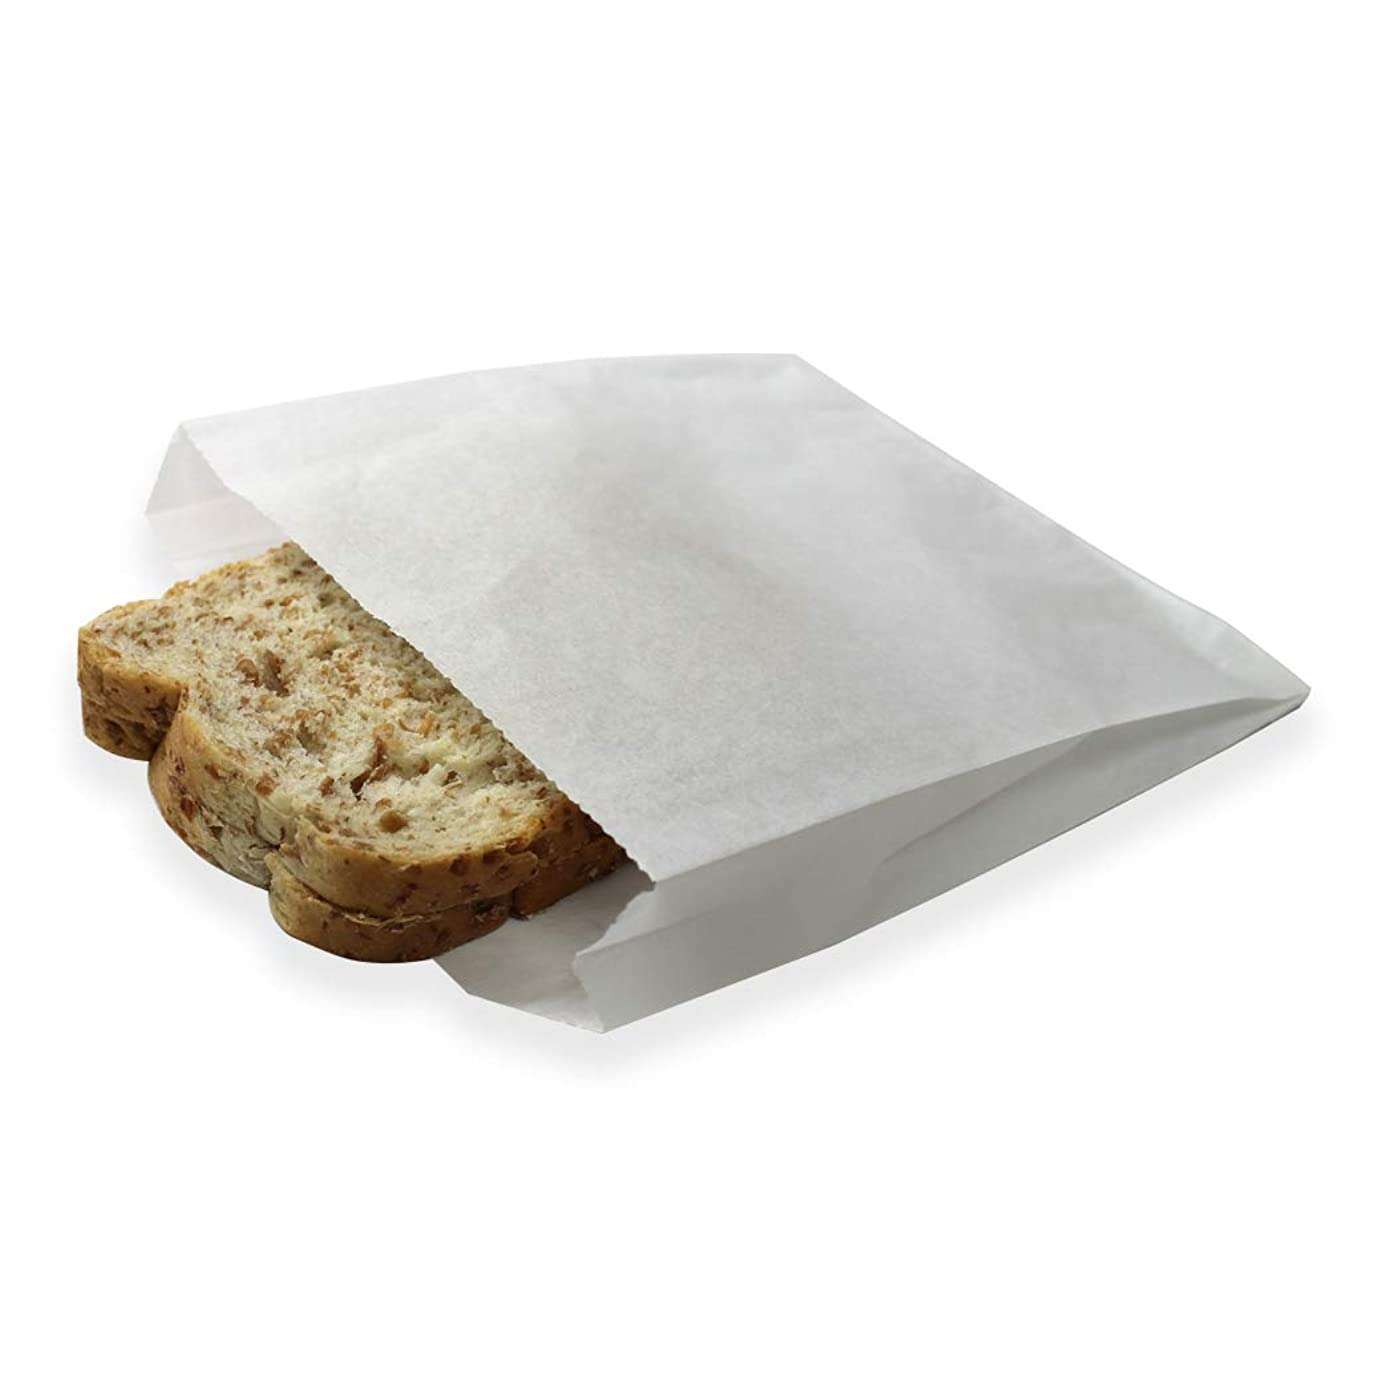 100 Pack Plain 7-3/4 x 6-1/2 x 1-1/2 Dry Wax Paper Sandwich Bags, Food Grade Water Grease Resistant, White Glassine Semi Translucent by Mighty Gadget